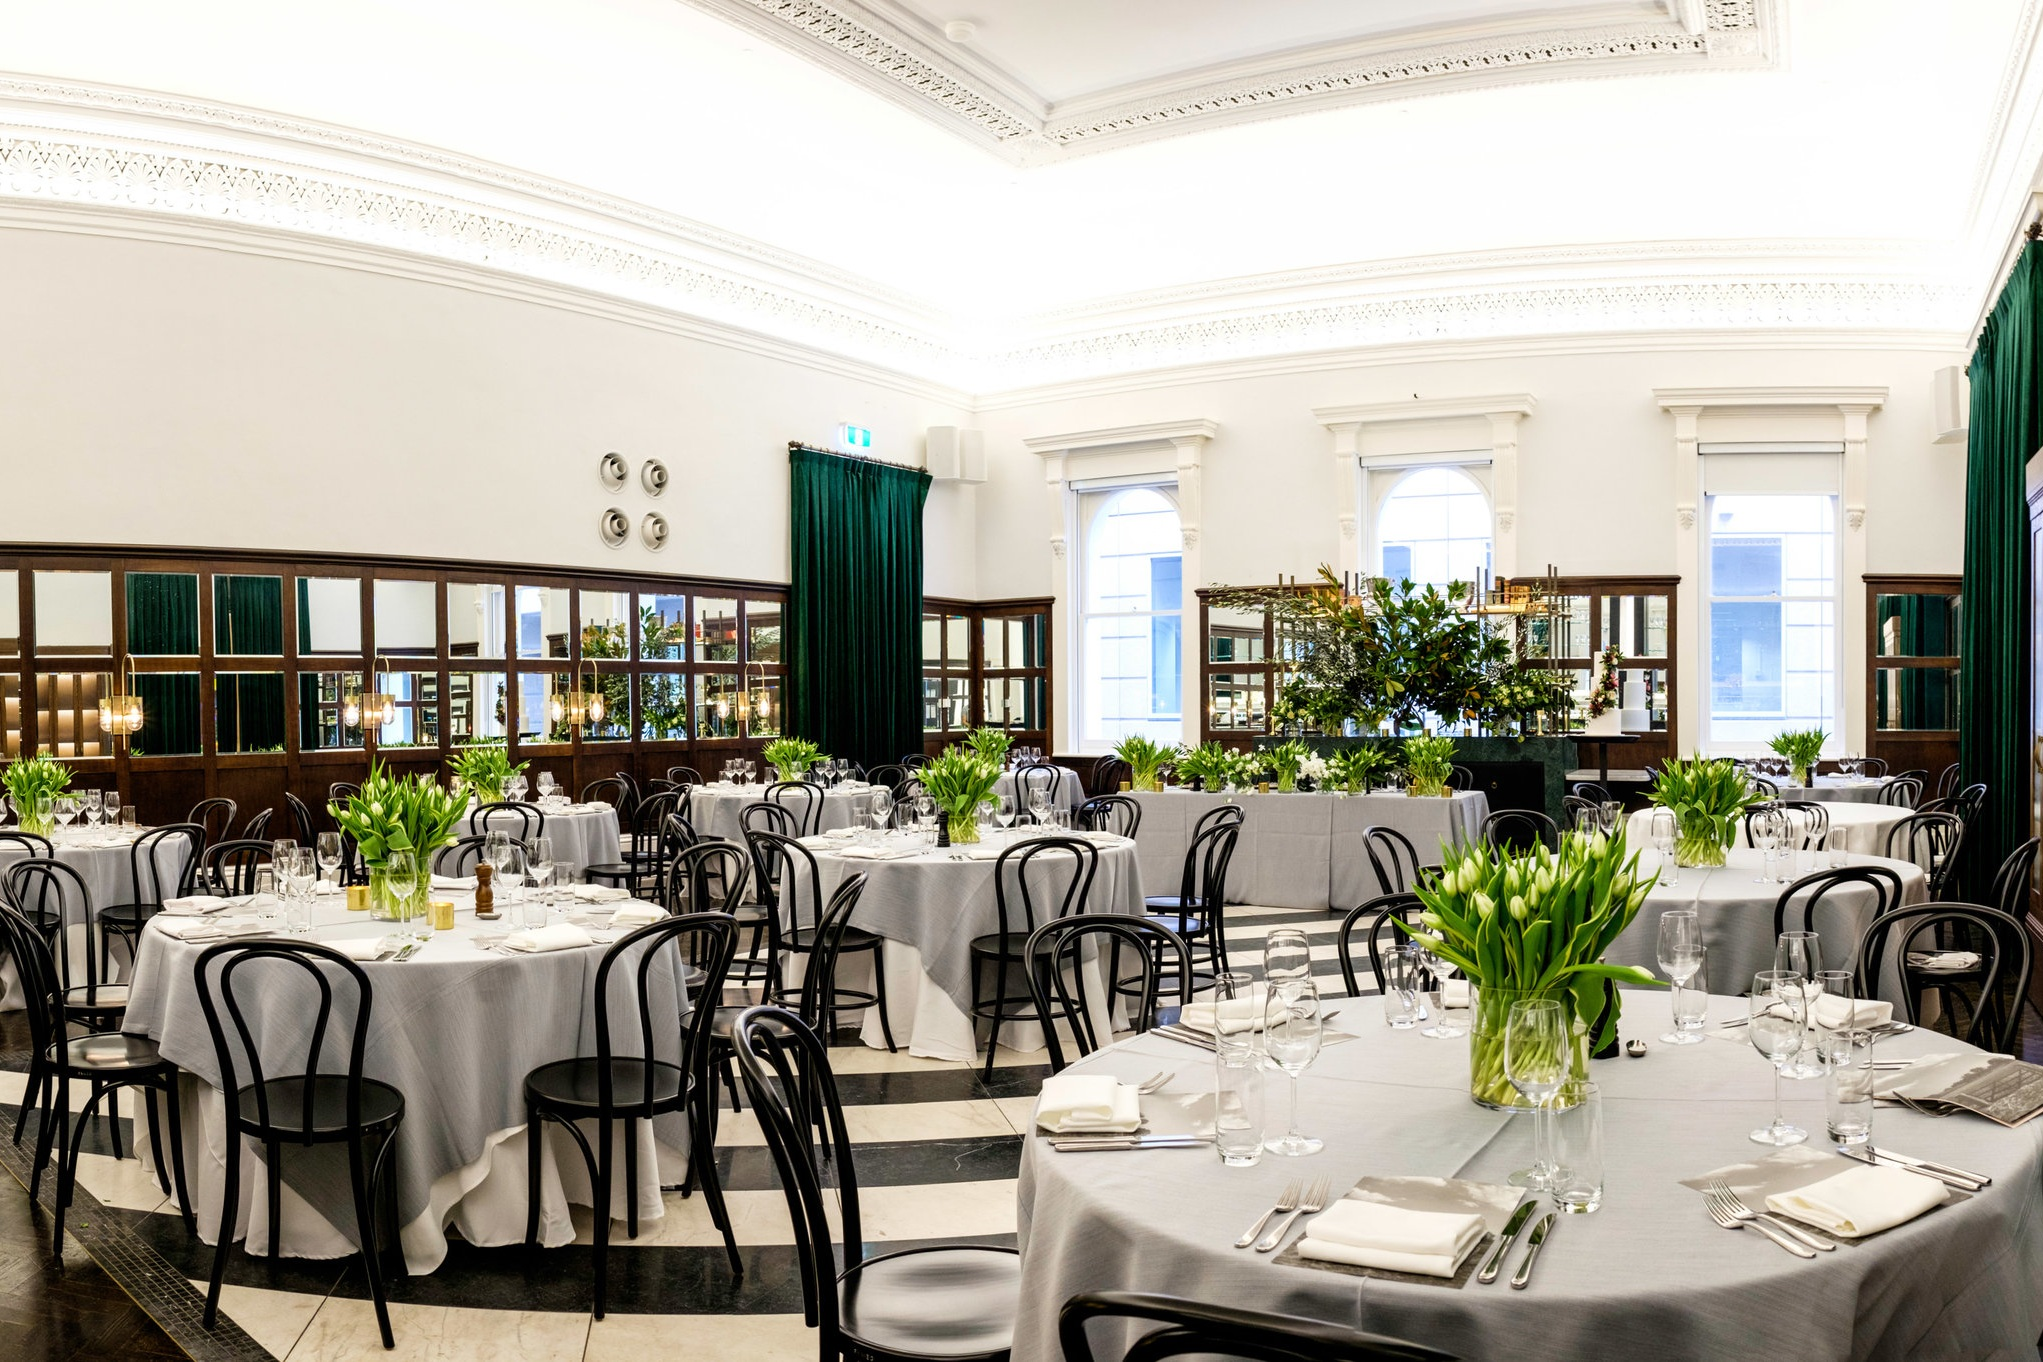 10 of the best wedding venues in Melbourne - Alfred Place - Mr Theodore